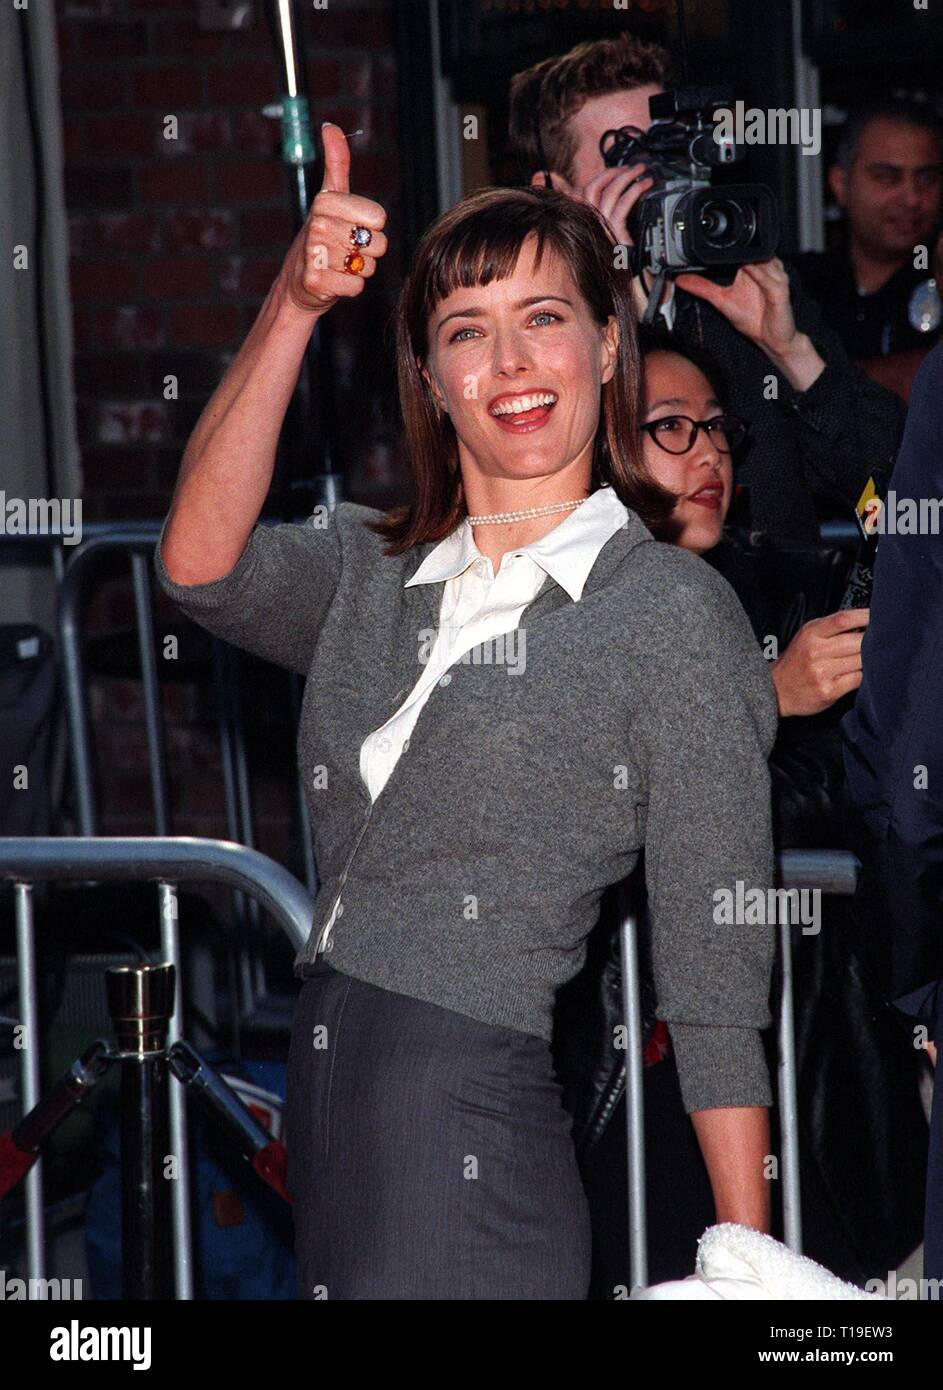 LOS ANGELES, CA - September 8, 2011:  Actress TEA LEONI at the world premiere, in Los Angeles, of husband David Duchovny's new movie 'The X-Files.' - Stock Image